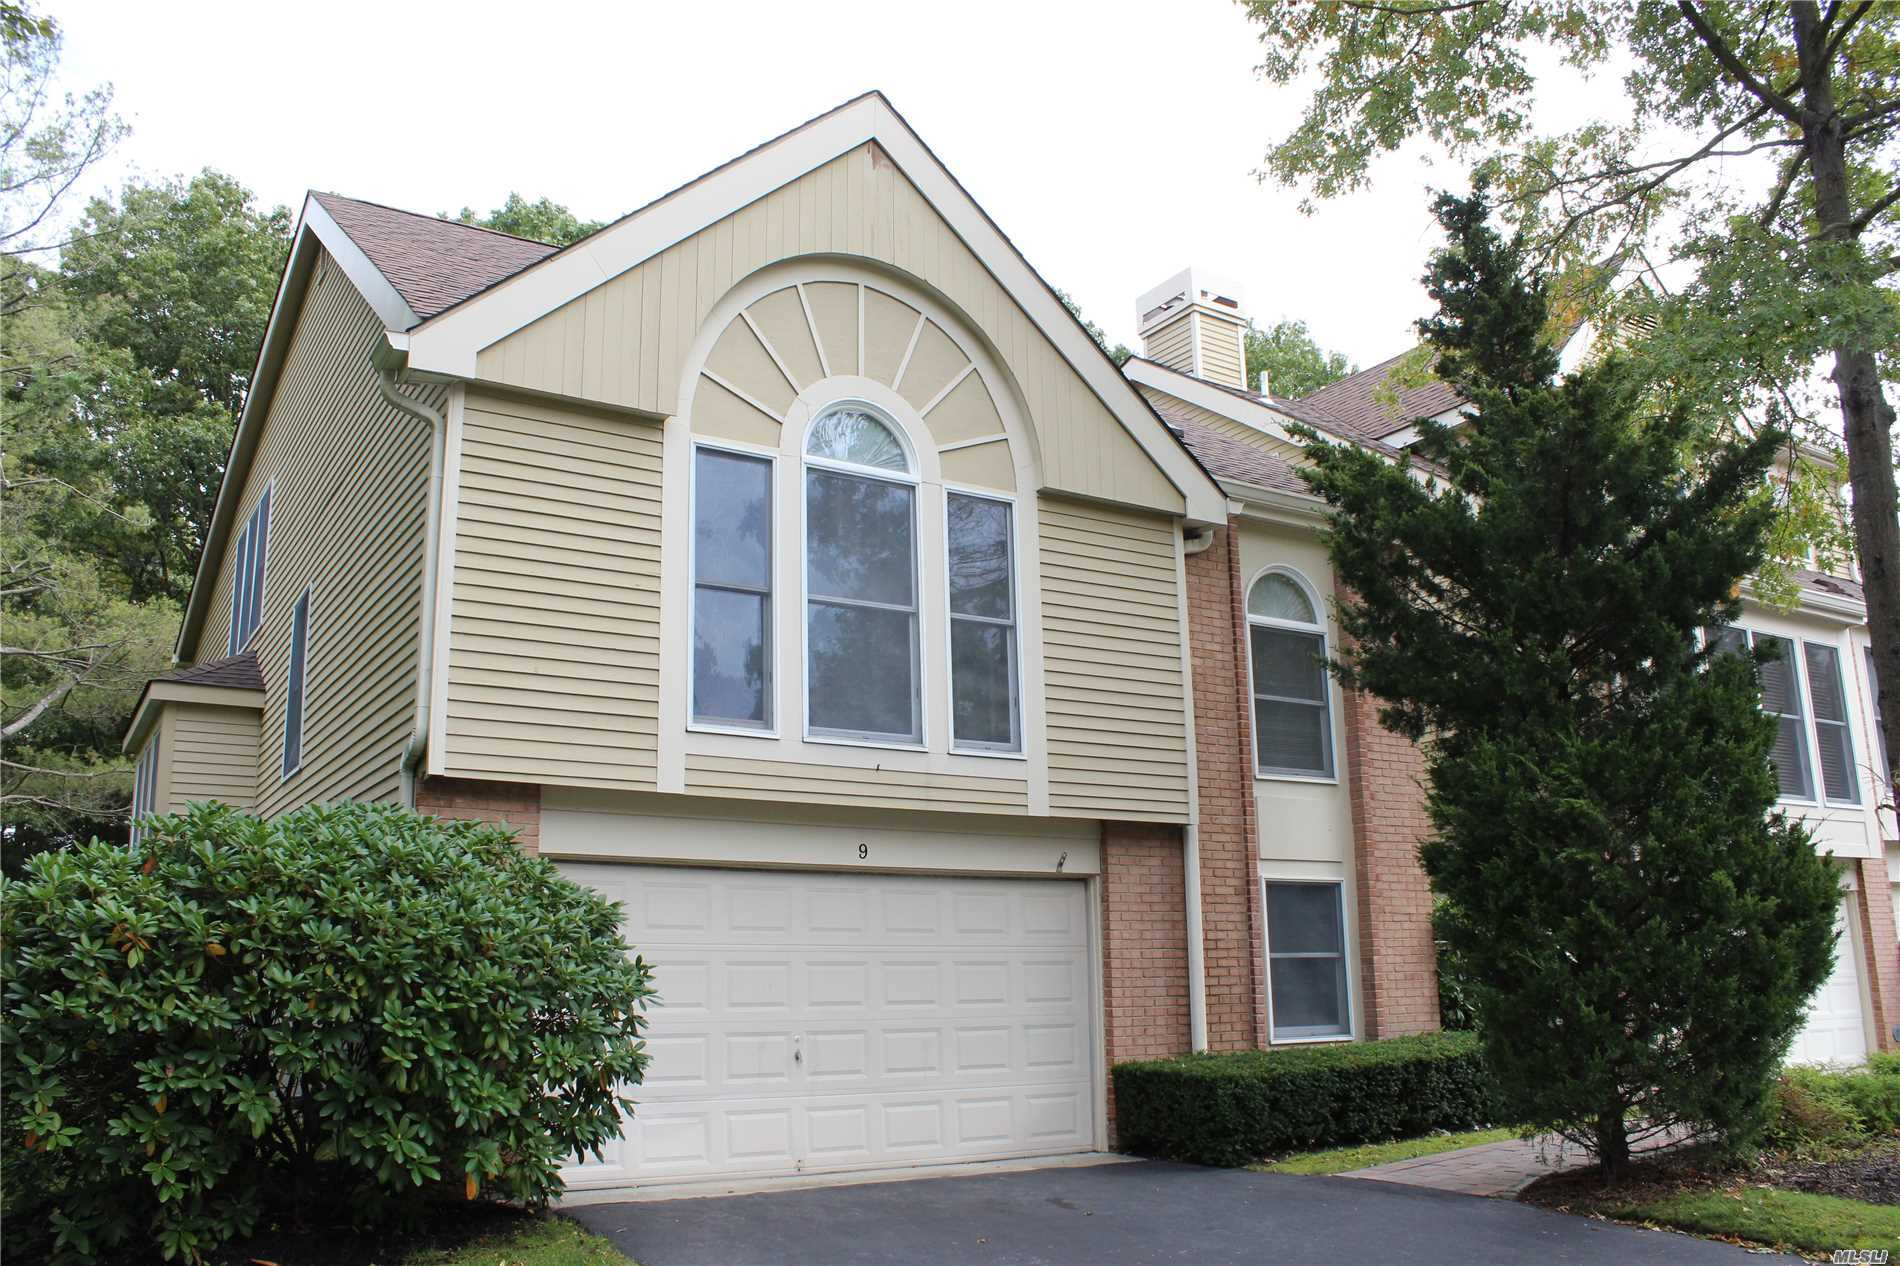 Property for sale at 9 Willow Ridge Dr, Smithtown,  NY 11787